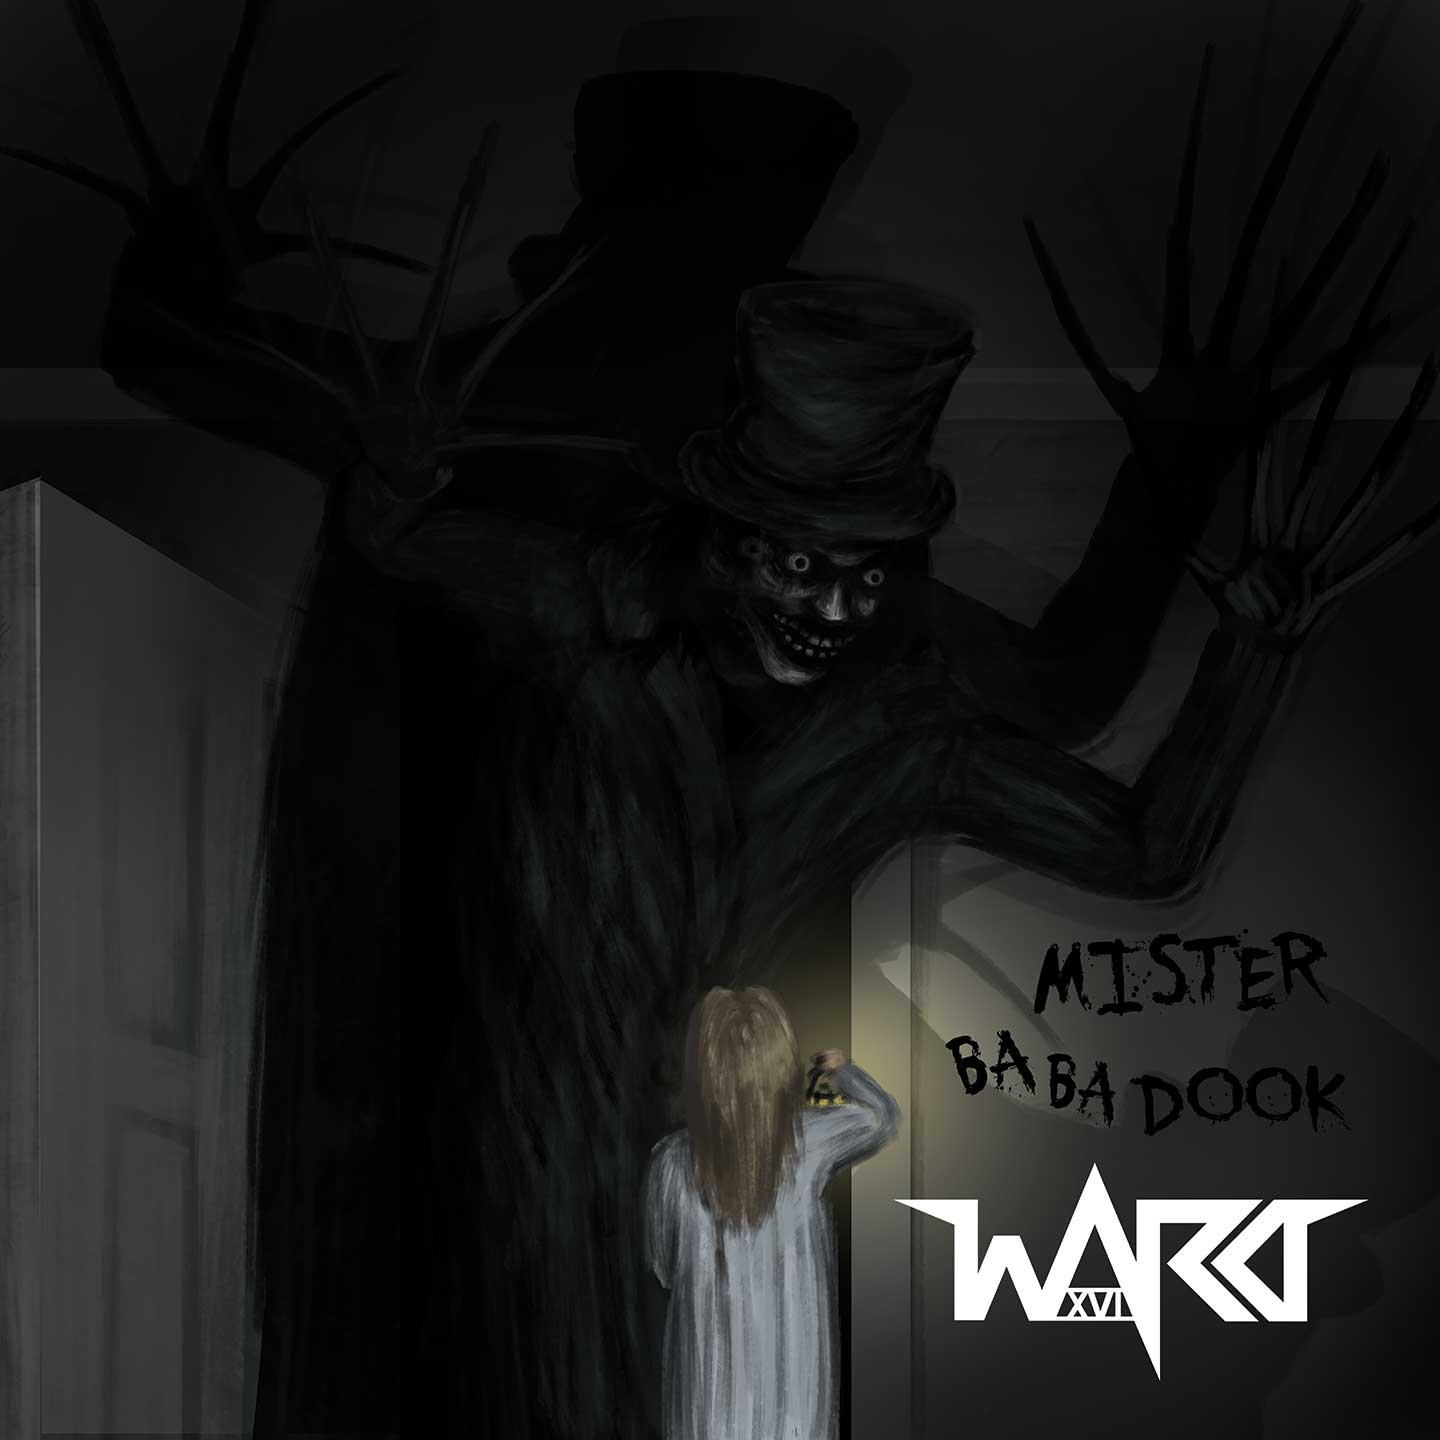 Cover - Ward XVI - Mister Babadook 1440p